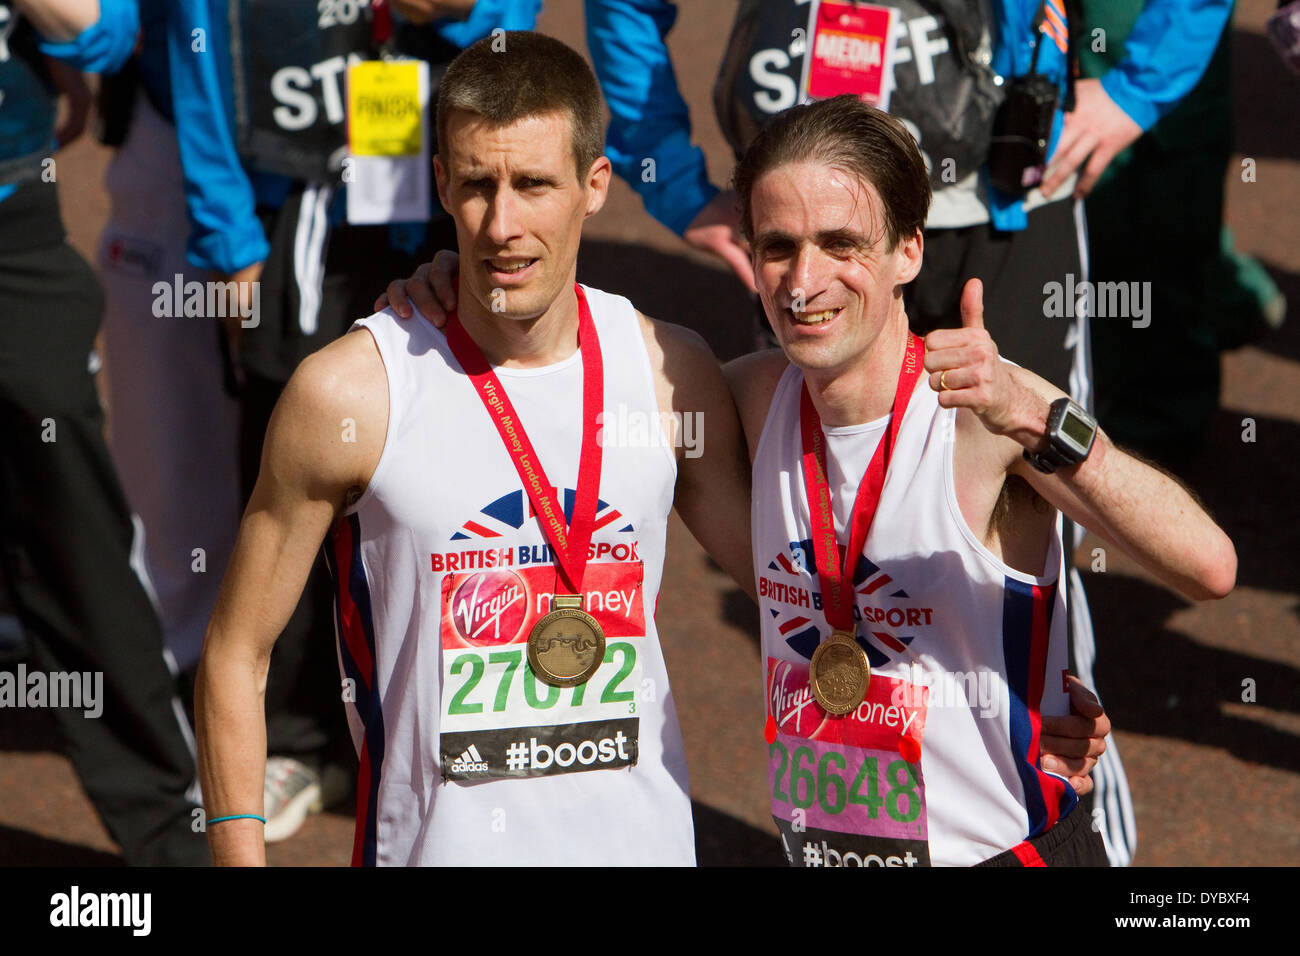 London,UK,13th April 2014,Noel Thatcher after finishing the London Marathon 201 Credit: Keith Larby/Alamy Live News - Stock Image